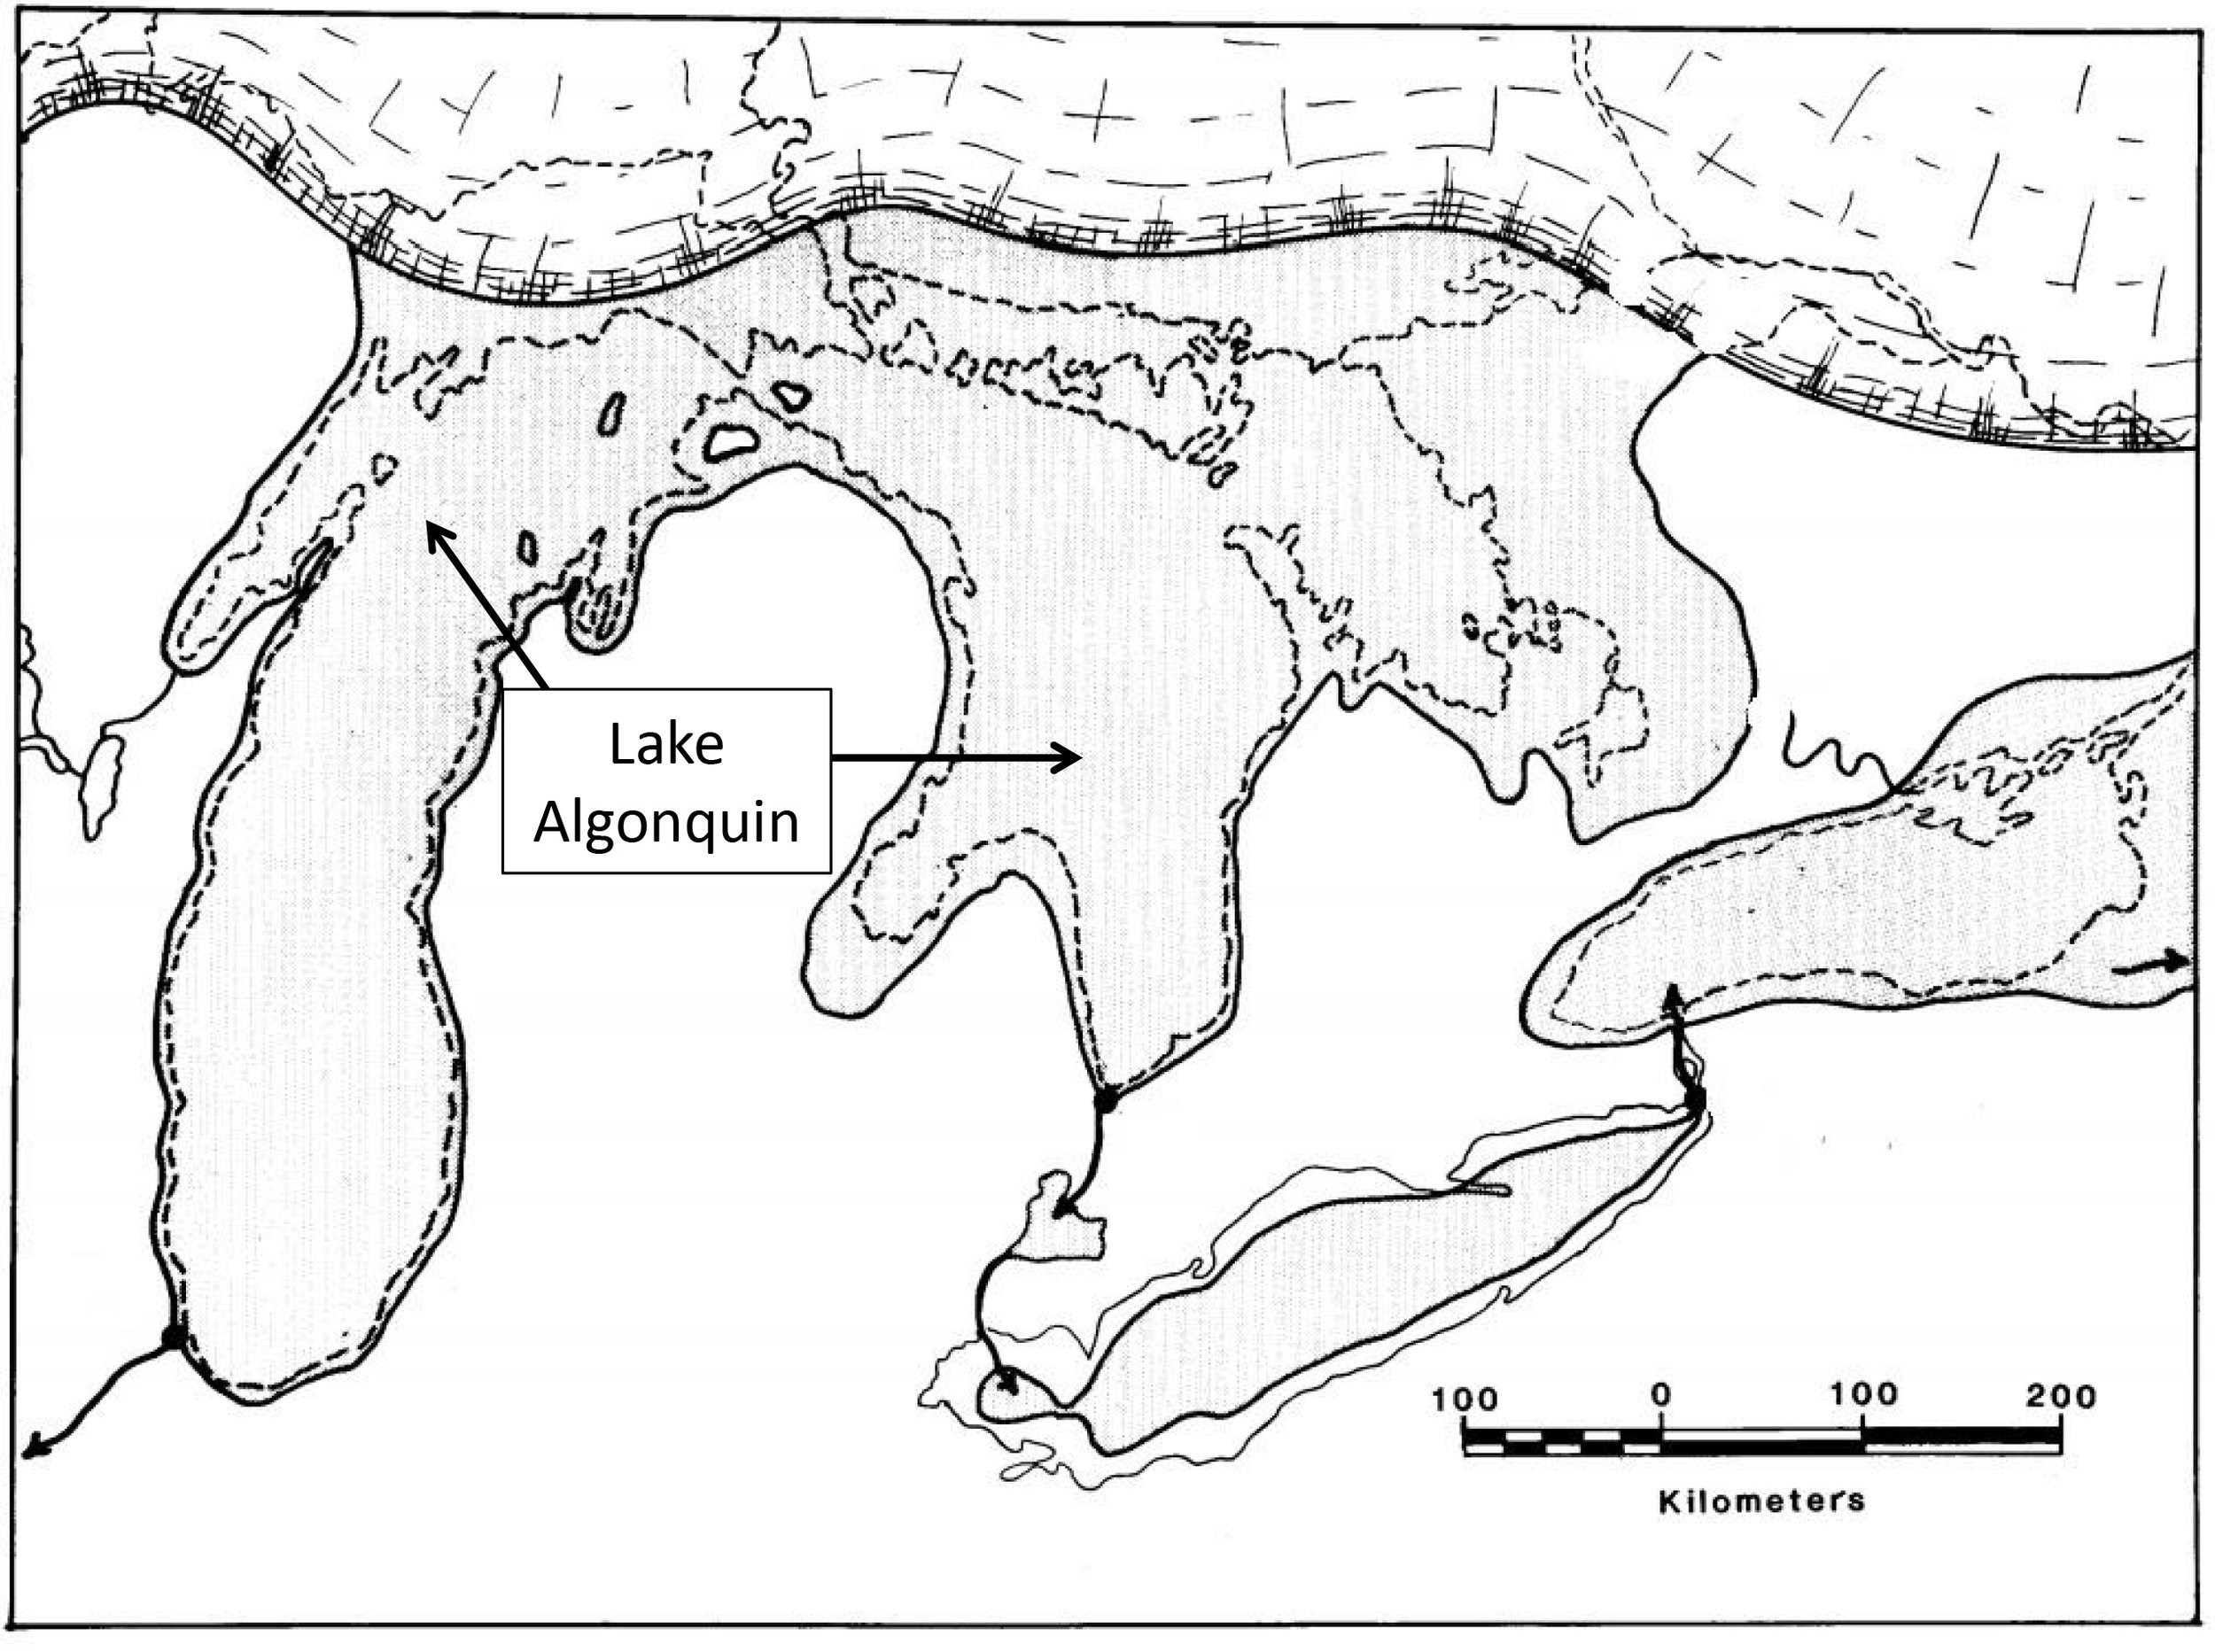 Figure 3: The approximate distribution of Lake Algonquin, from  Curtis Larsen (1987): Geological History of Glacial Lake Algonquin and the Upper Great Lakes, U.S. Geological Survey Bulletin 1801, 39p.